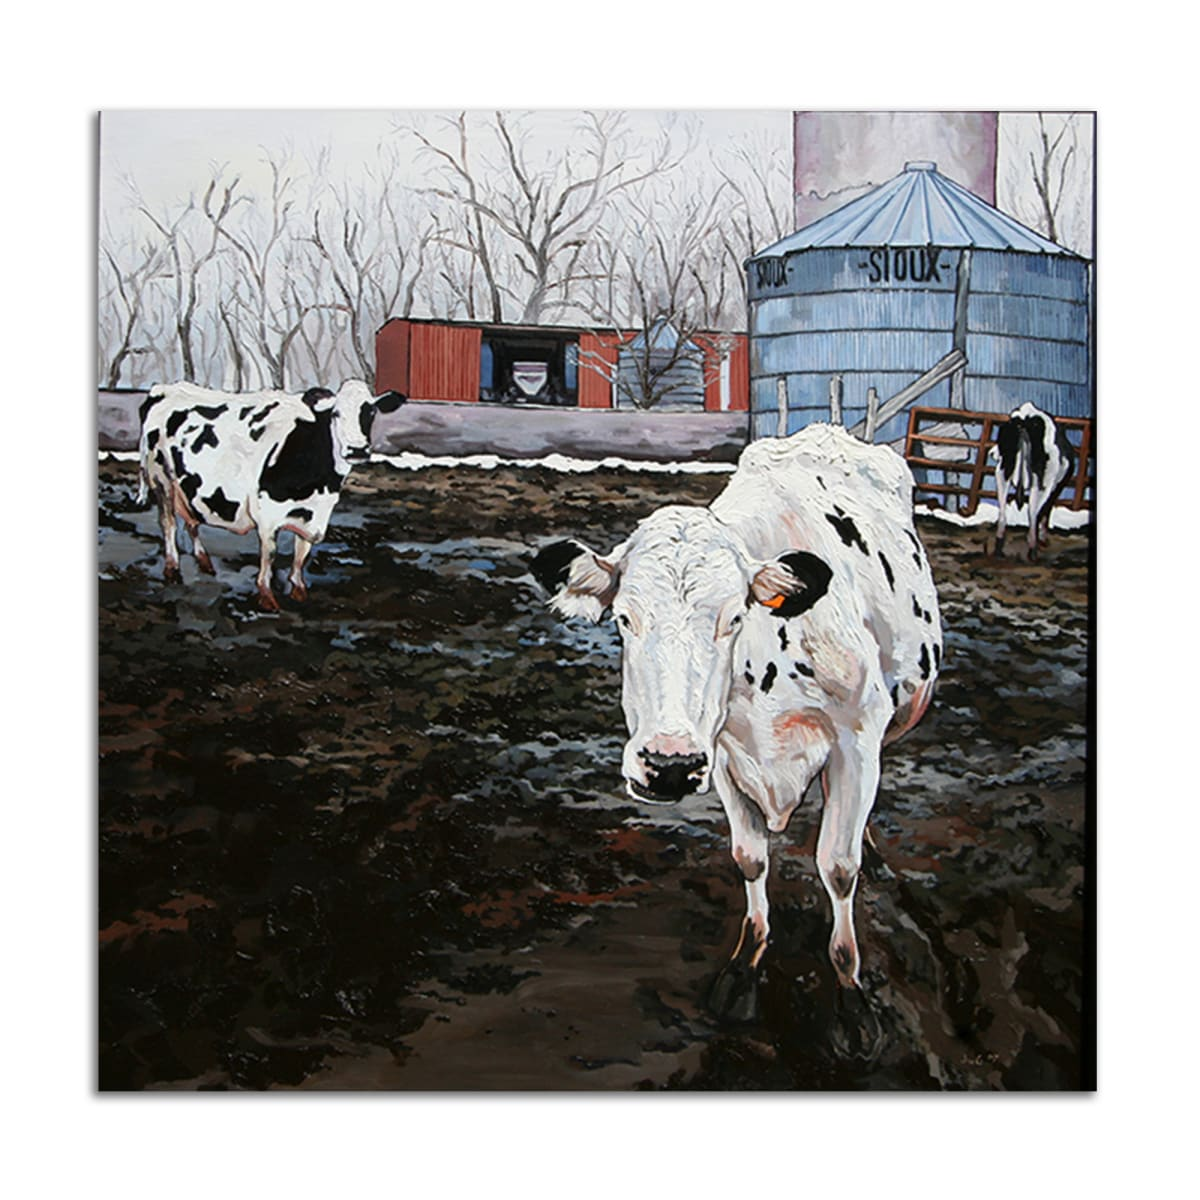 Sioux City Cows by Jared Gillett